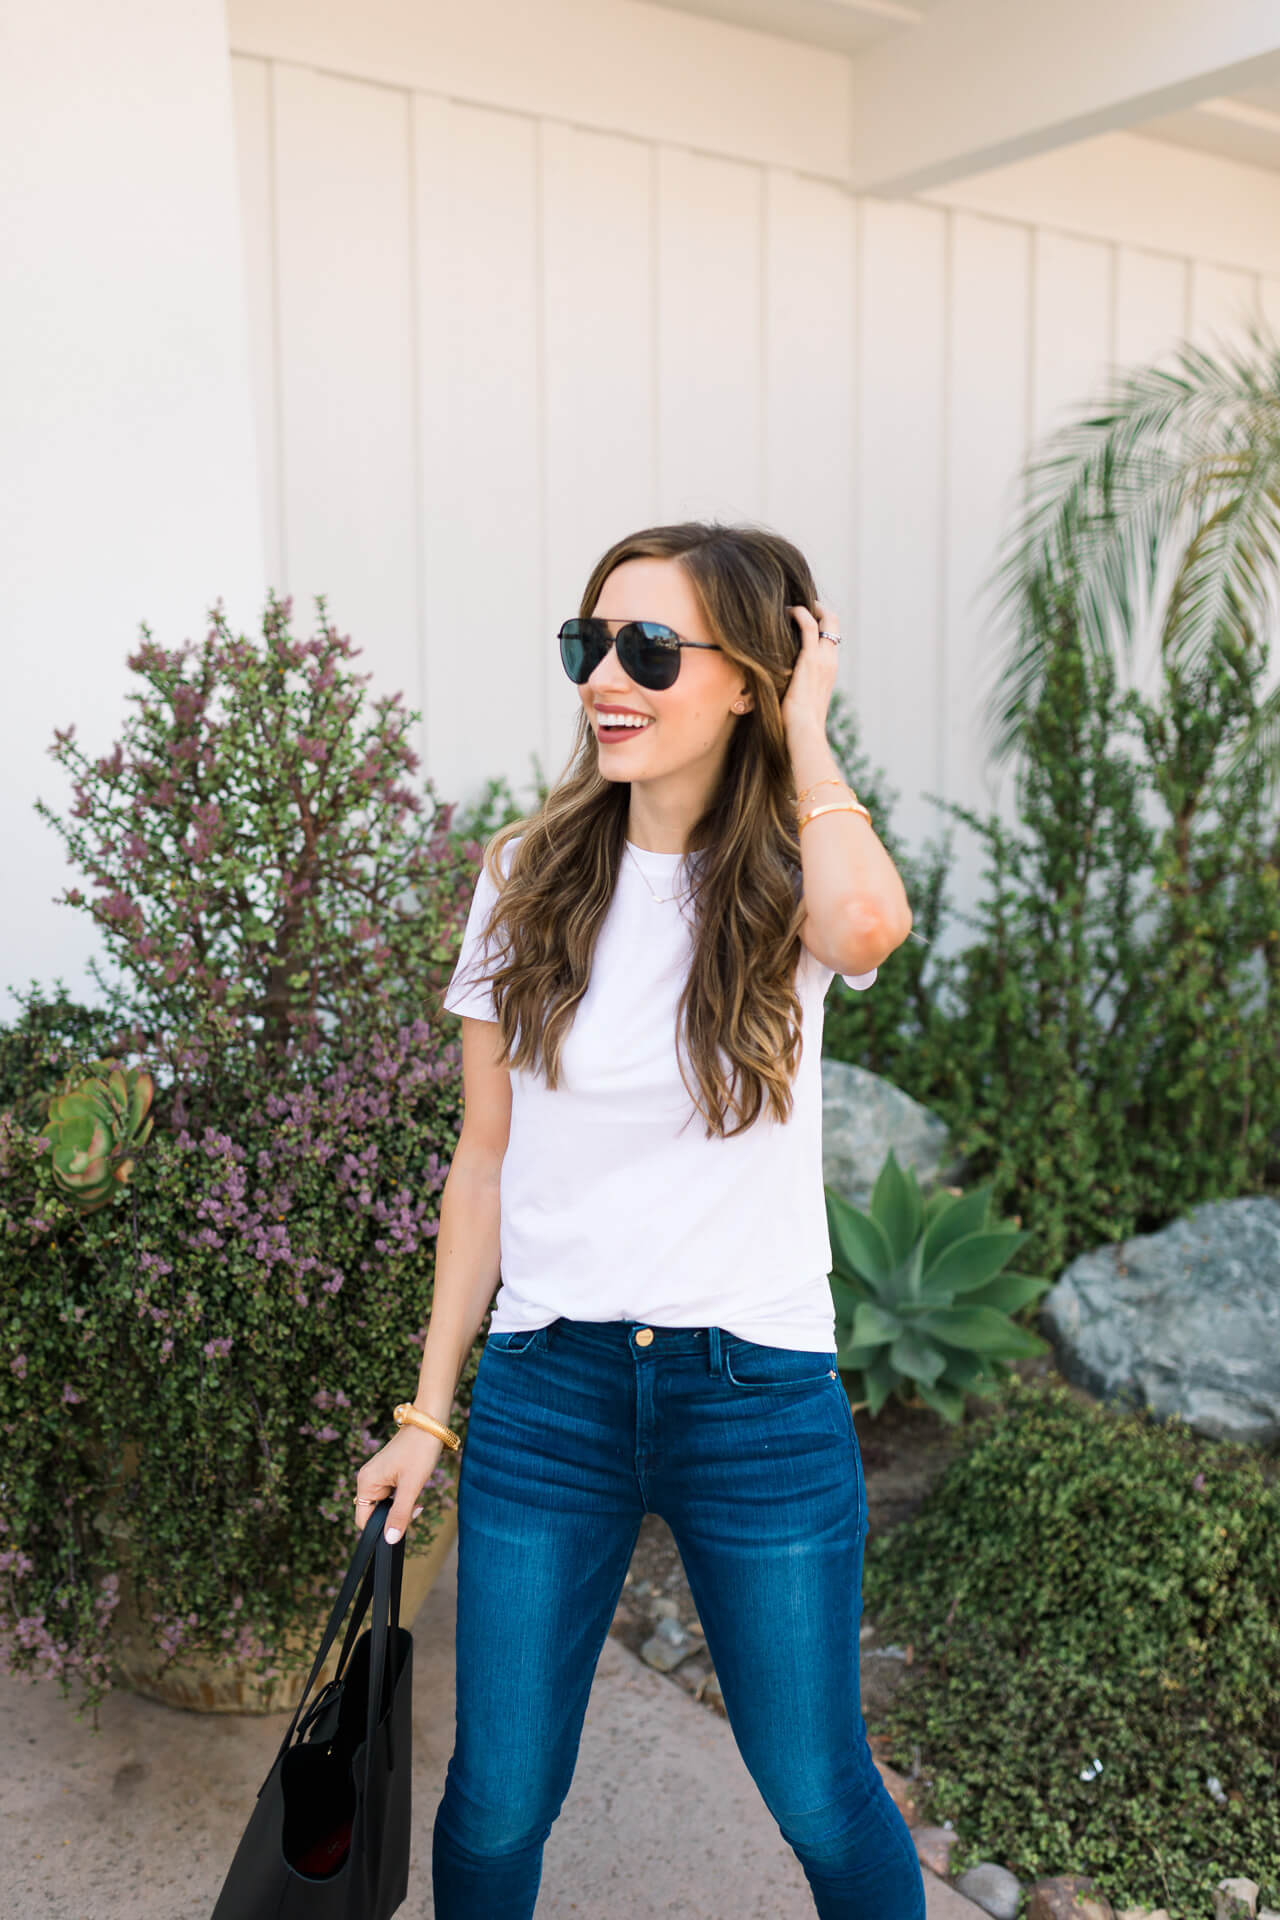 the best way to shop for jeans - M Loves M Los Angeles and Orange County fashion and lifestyle blogger @marmar